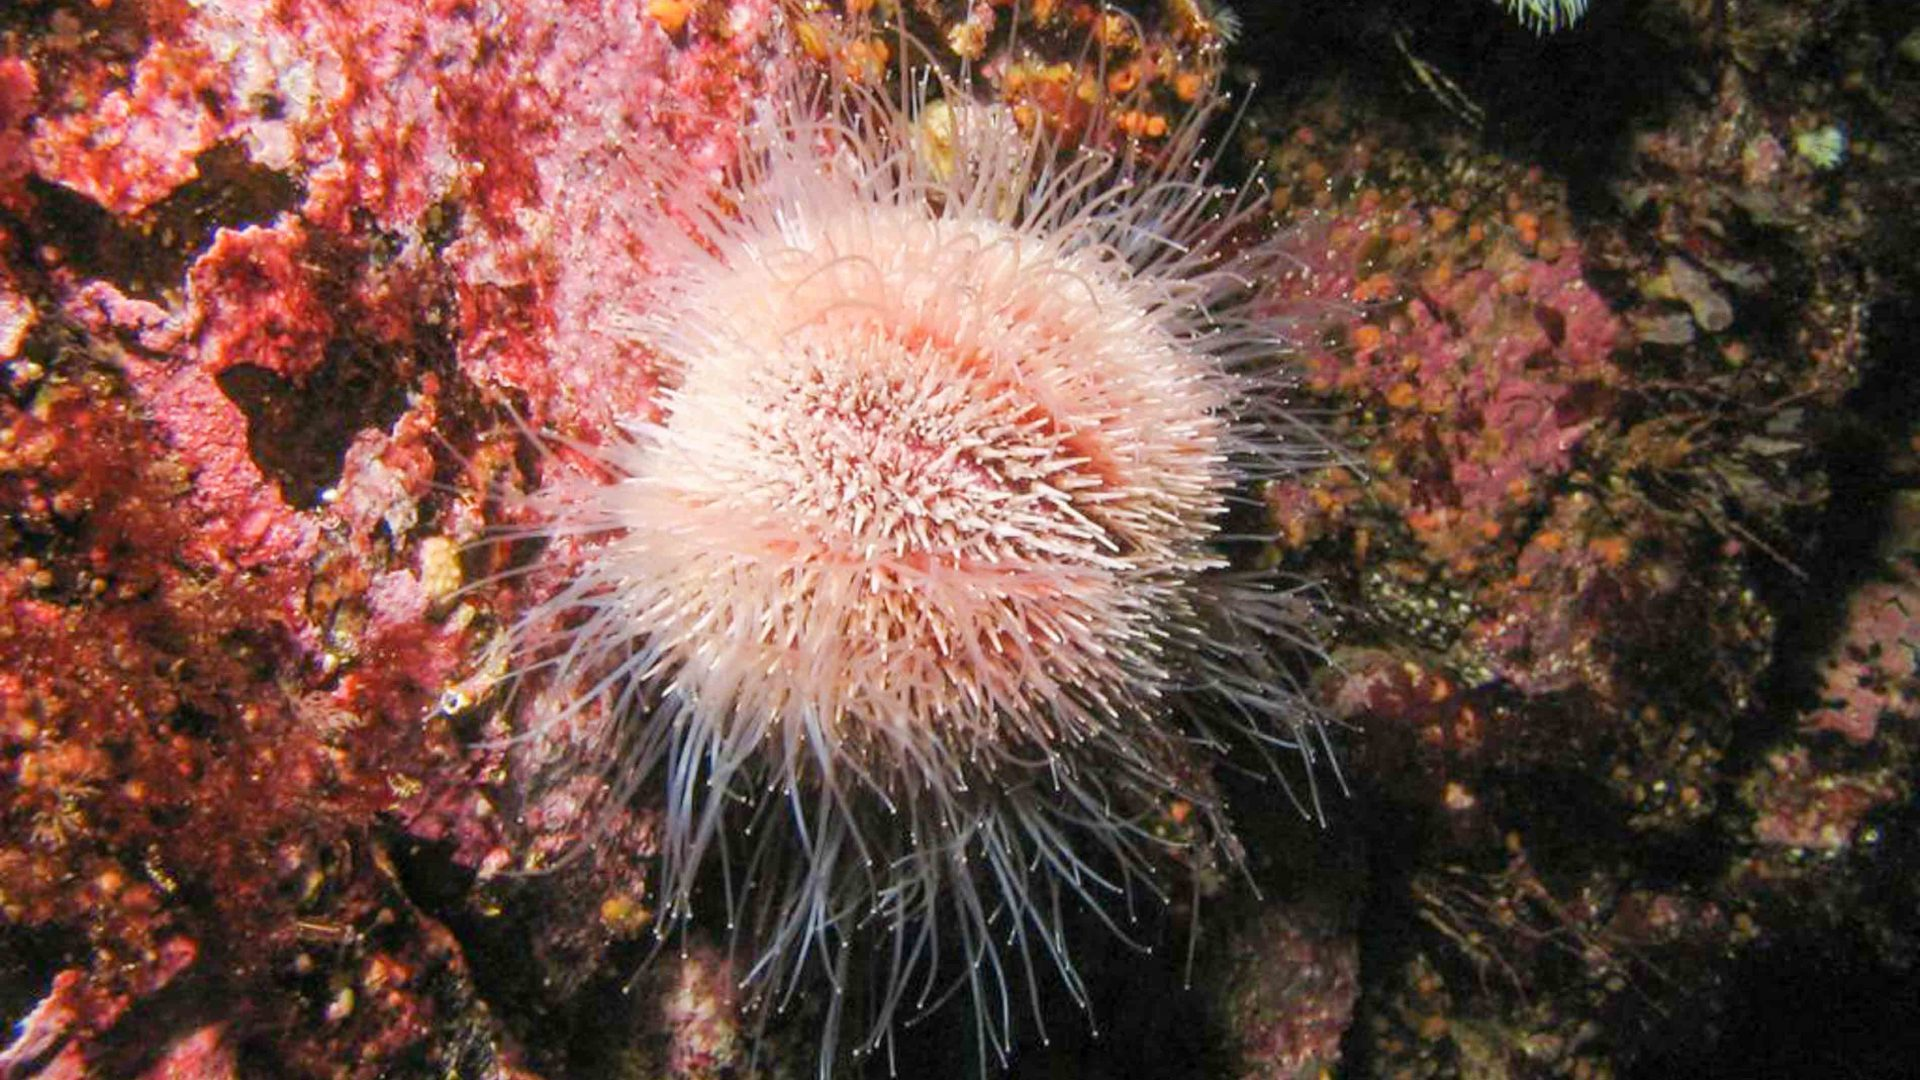 Snorkeling in Scotland; A sea anemone under the water in Scotland.